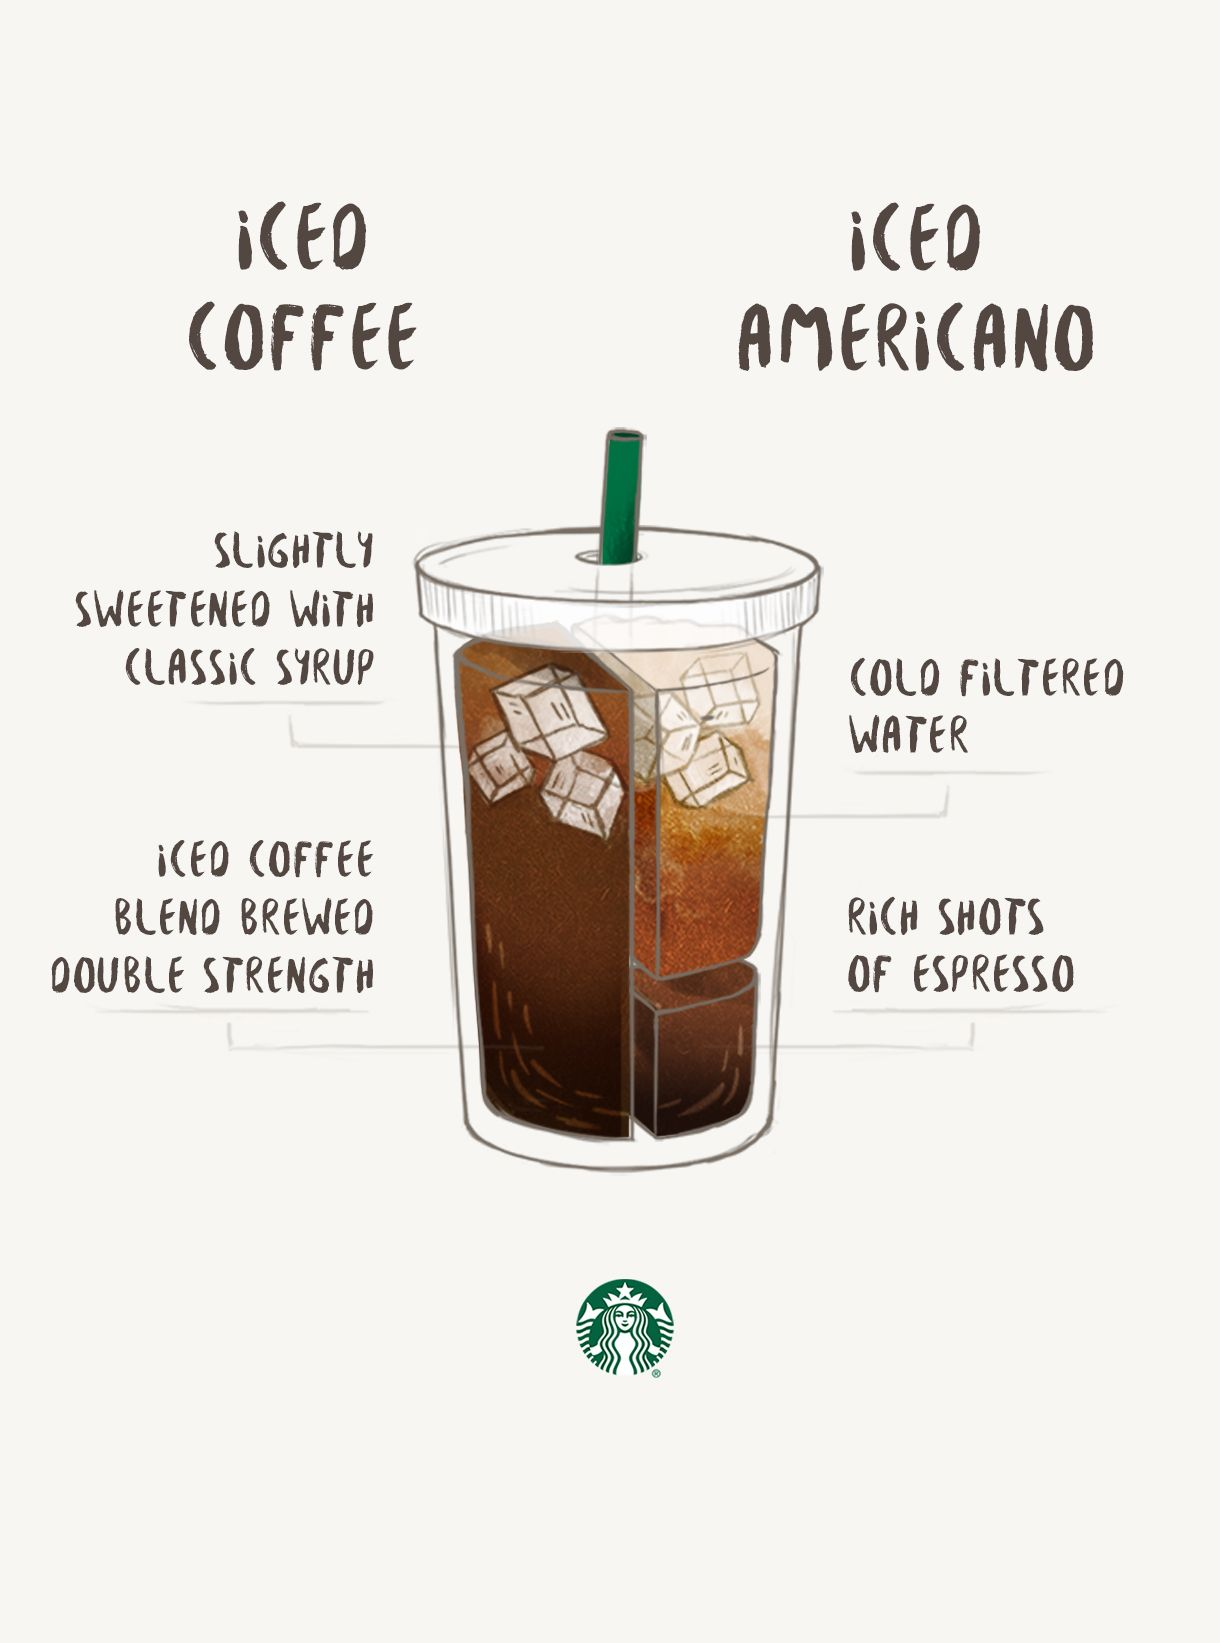 Coffee Americano Starbucks Iced Coffee Vs Iced Americano Cup Of Joe Starbucks